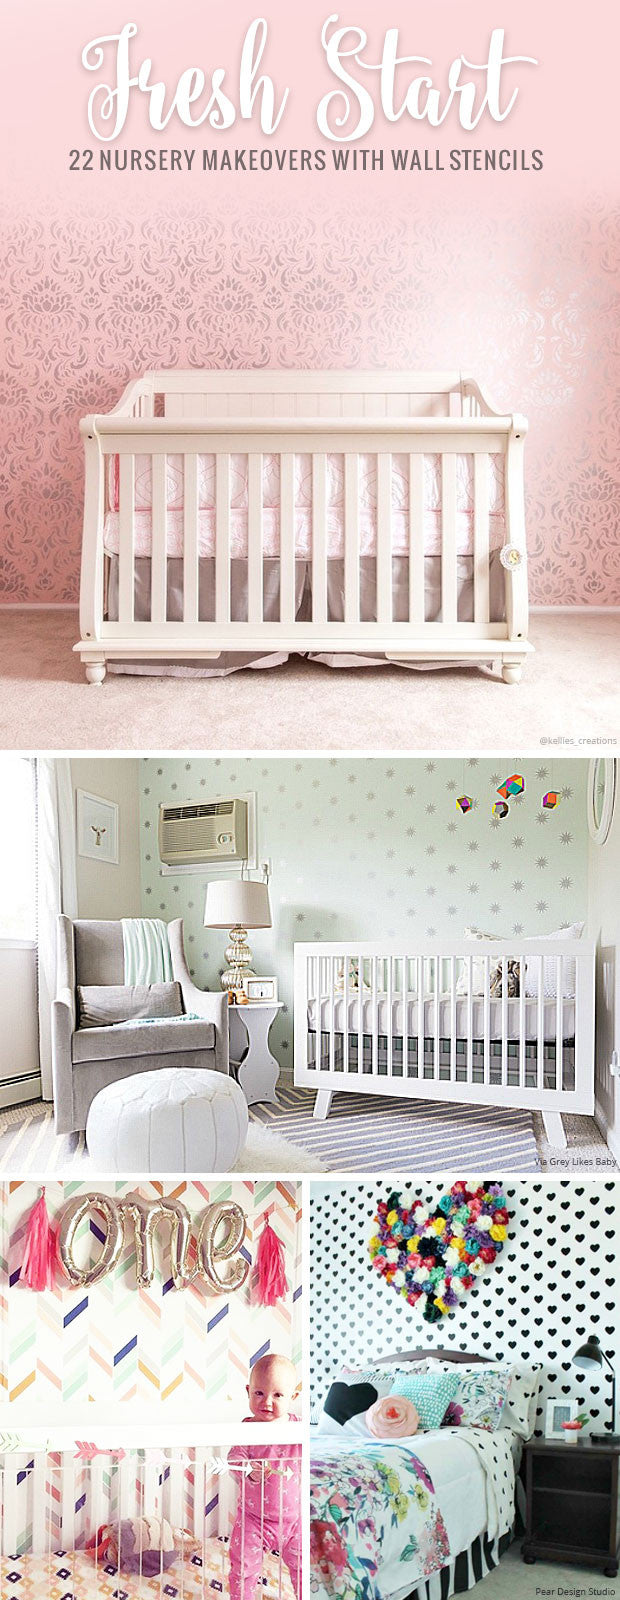 9 Nursery Makeovers with Wall Stencils - Colorful DIY Decor ...